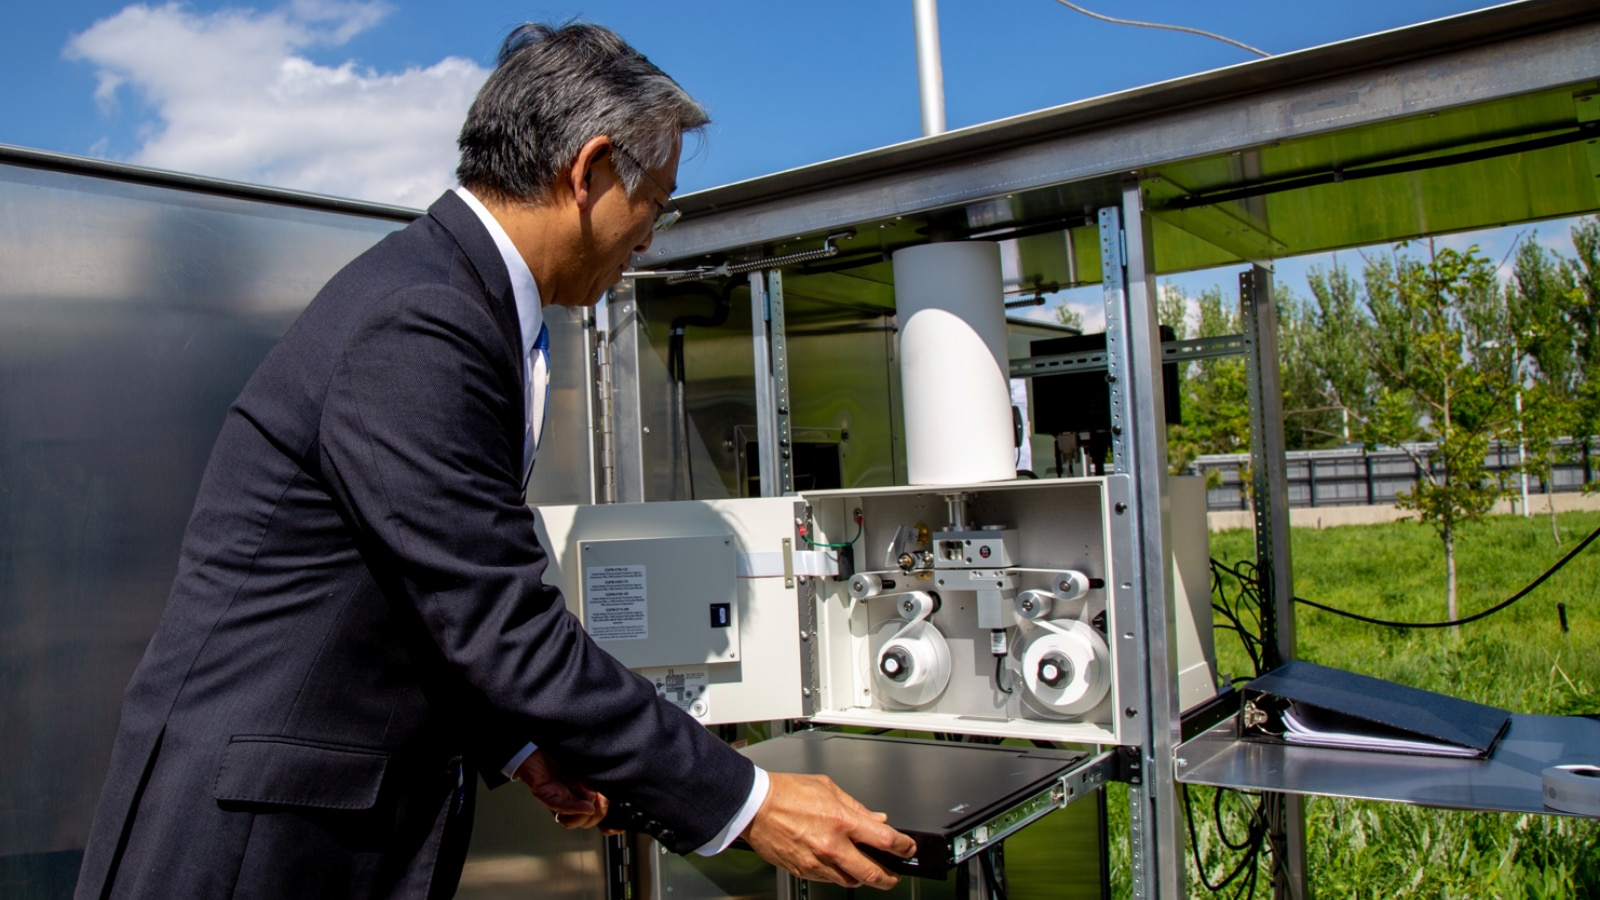 U.S. Ambassador to the Kyrgyz Republic Donald Lu examines the beta attenuation monitor at U.S. Embassy Bishkek. The monitor collects data on the particulate matter present in the air. (Courtesy of U.S. Embassy Bishkek)